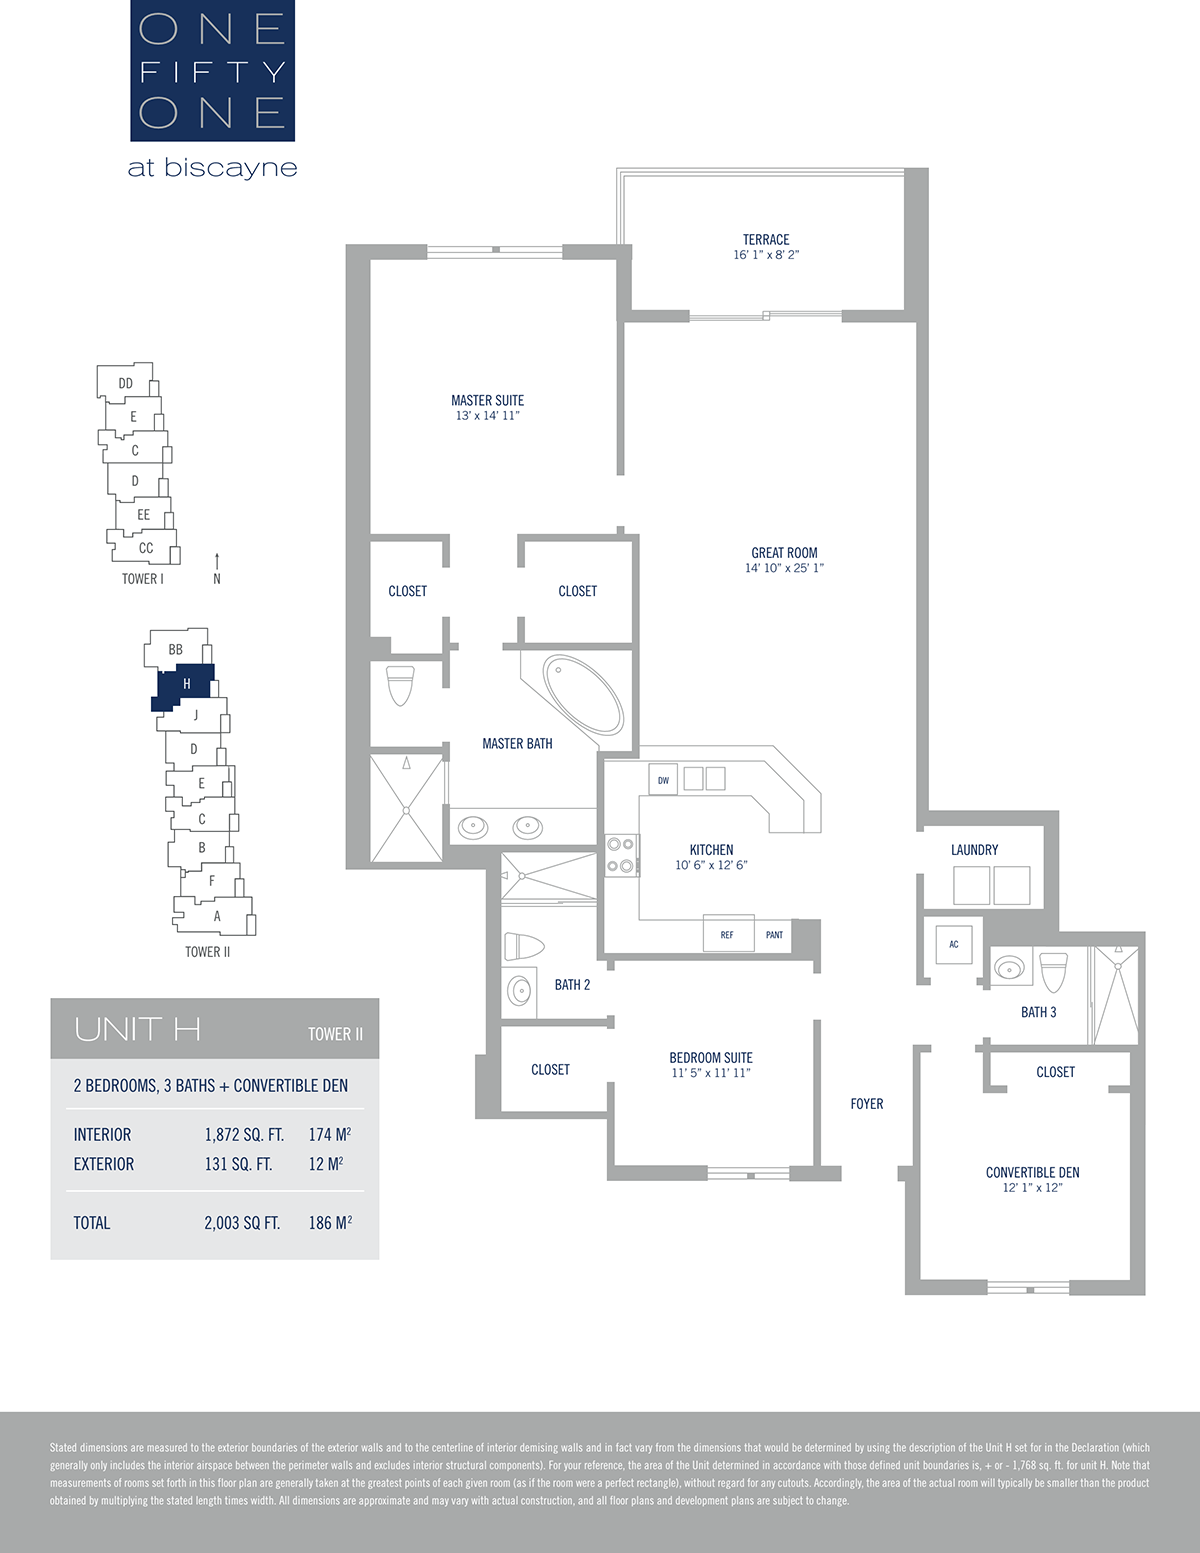 One Fifty One At Biscayne - Floorplan 8